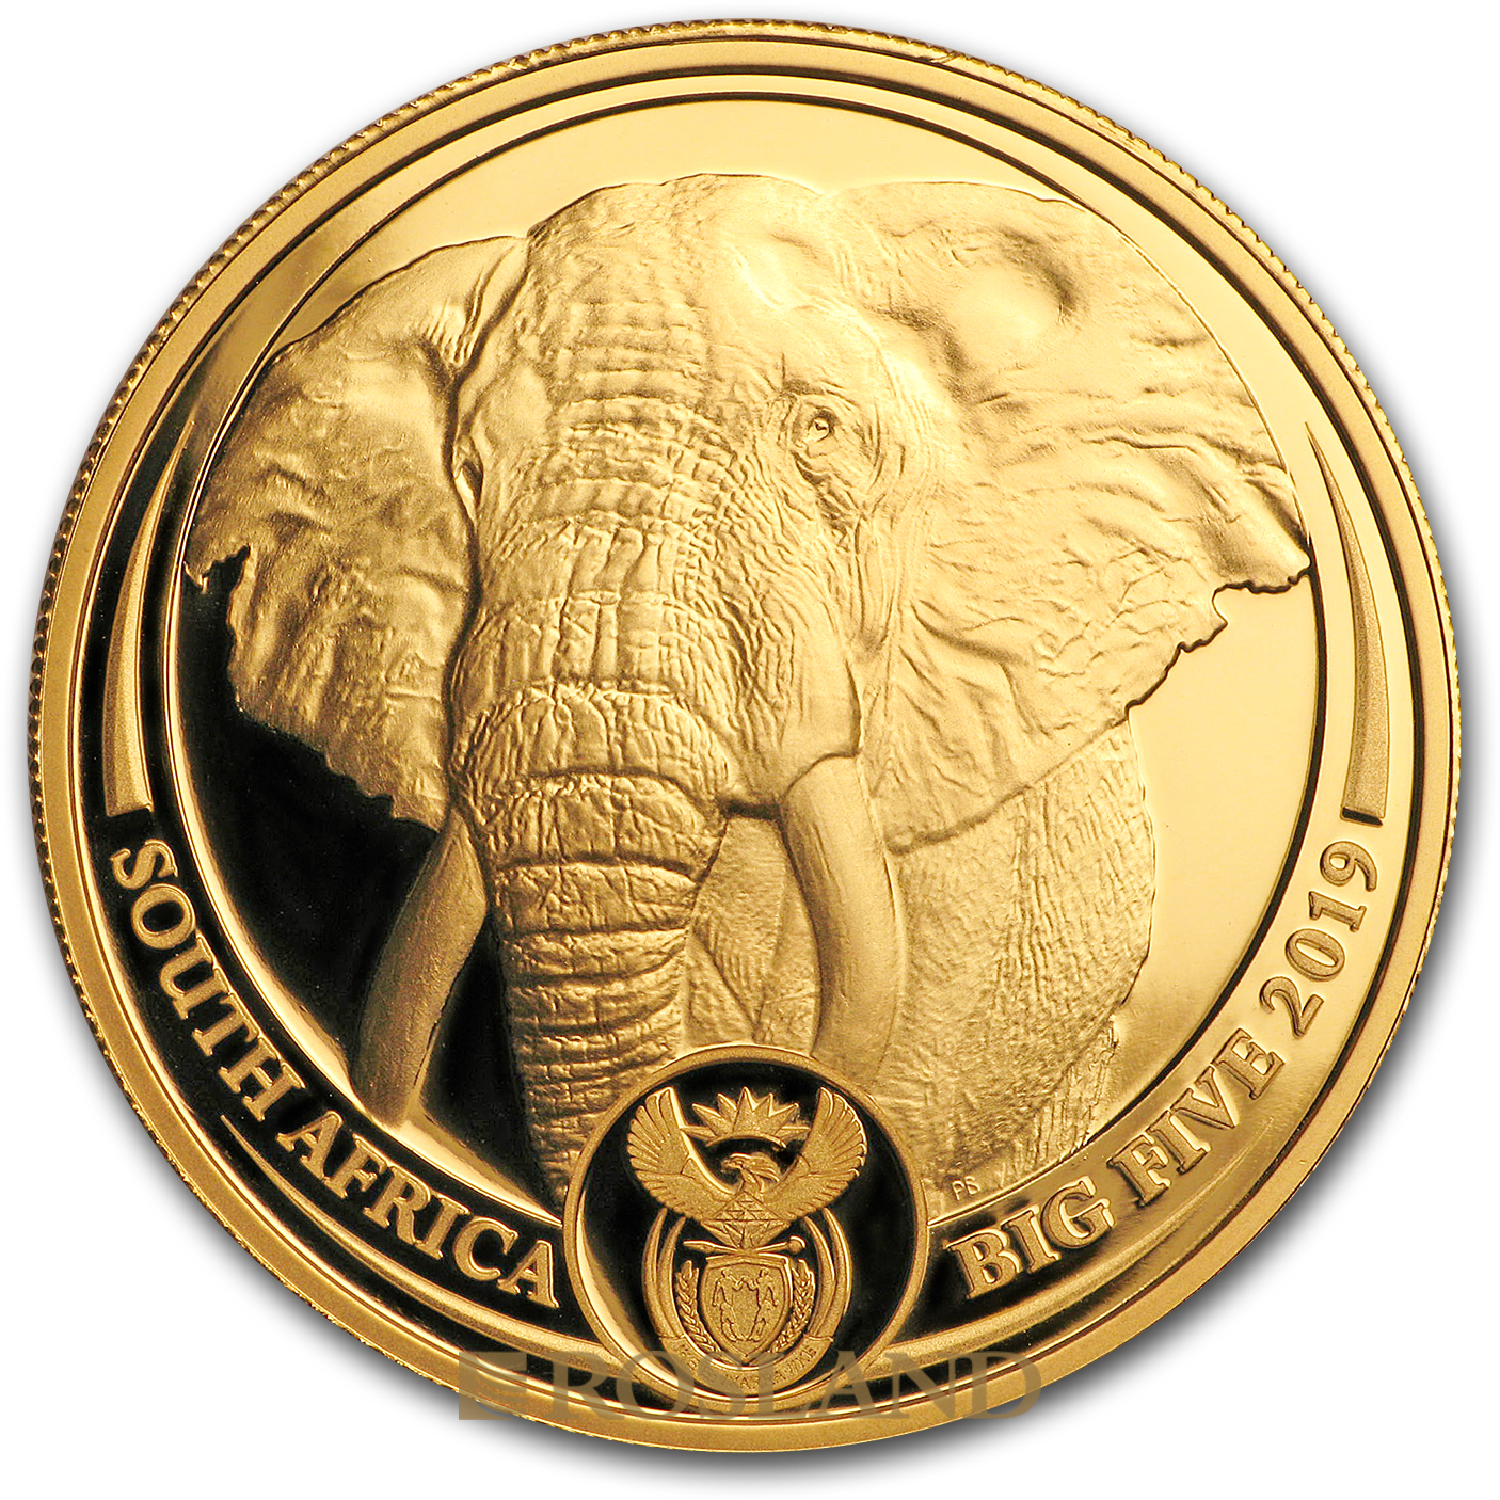 1 Unze Goldmünze Big Five Elefant 2019 PP (Box, Zertifikat)